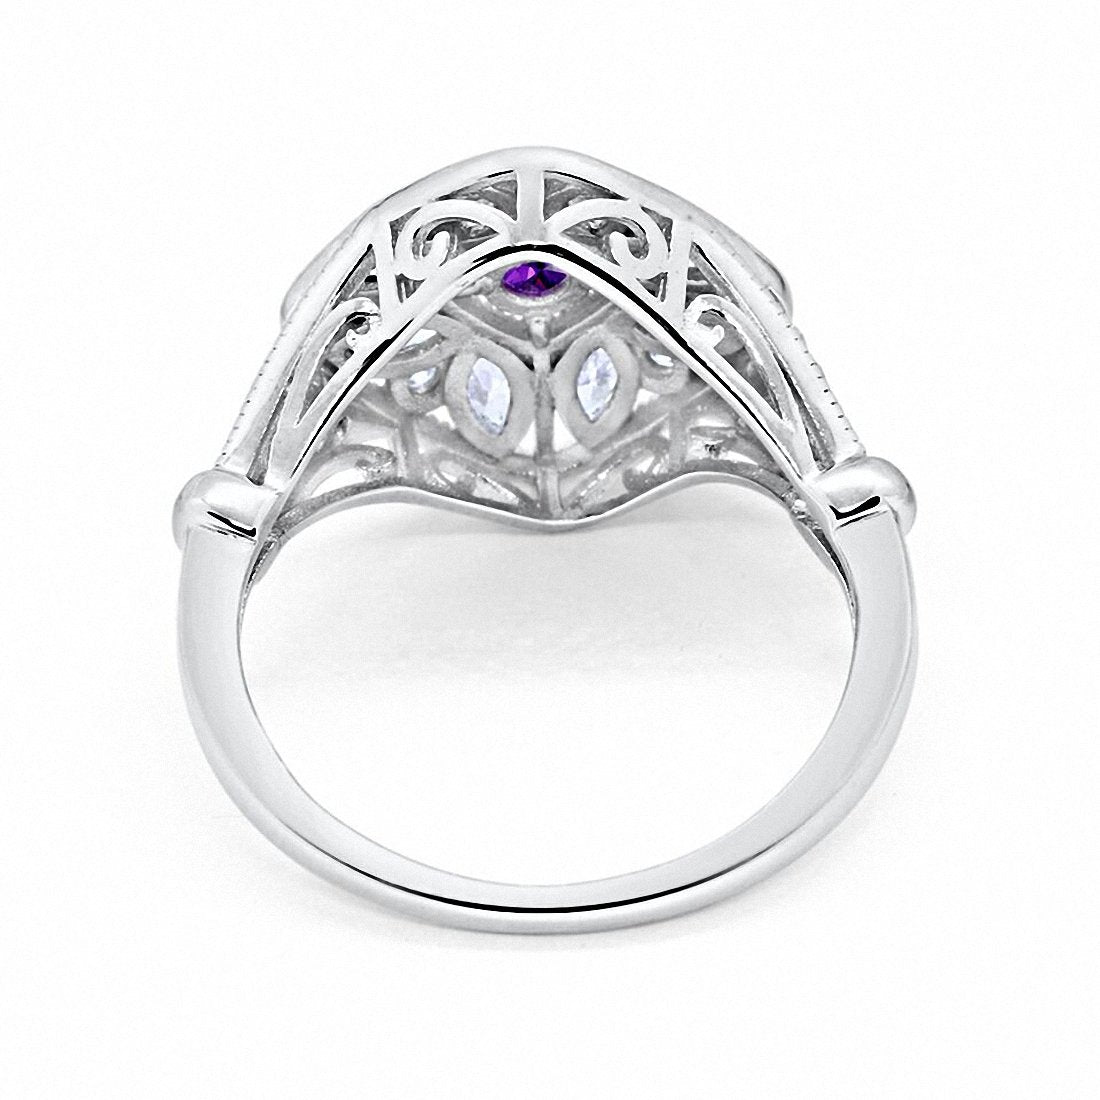 Art Deco Ring Marquise Filigree Simulated Amethsyt CZ 925 Sterling Silver